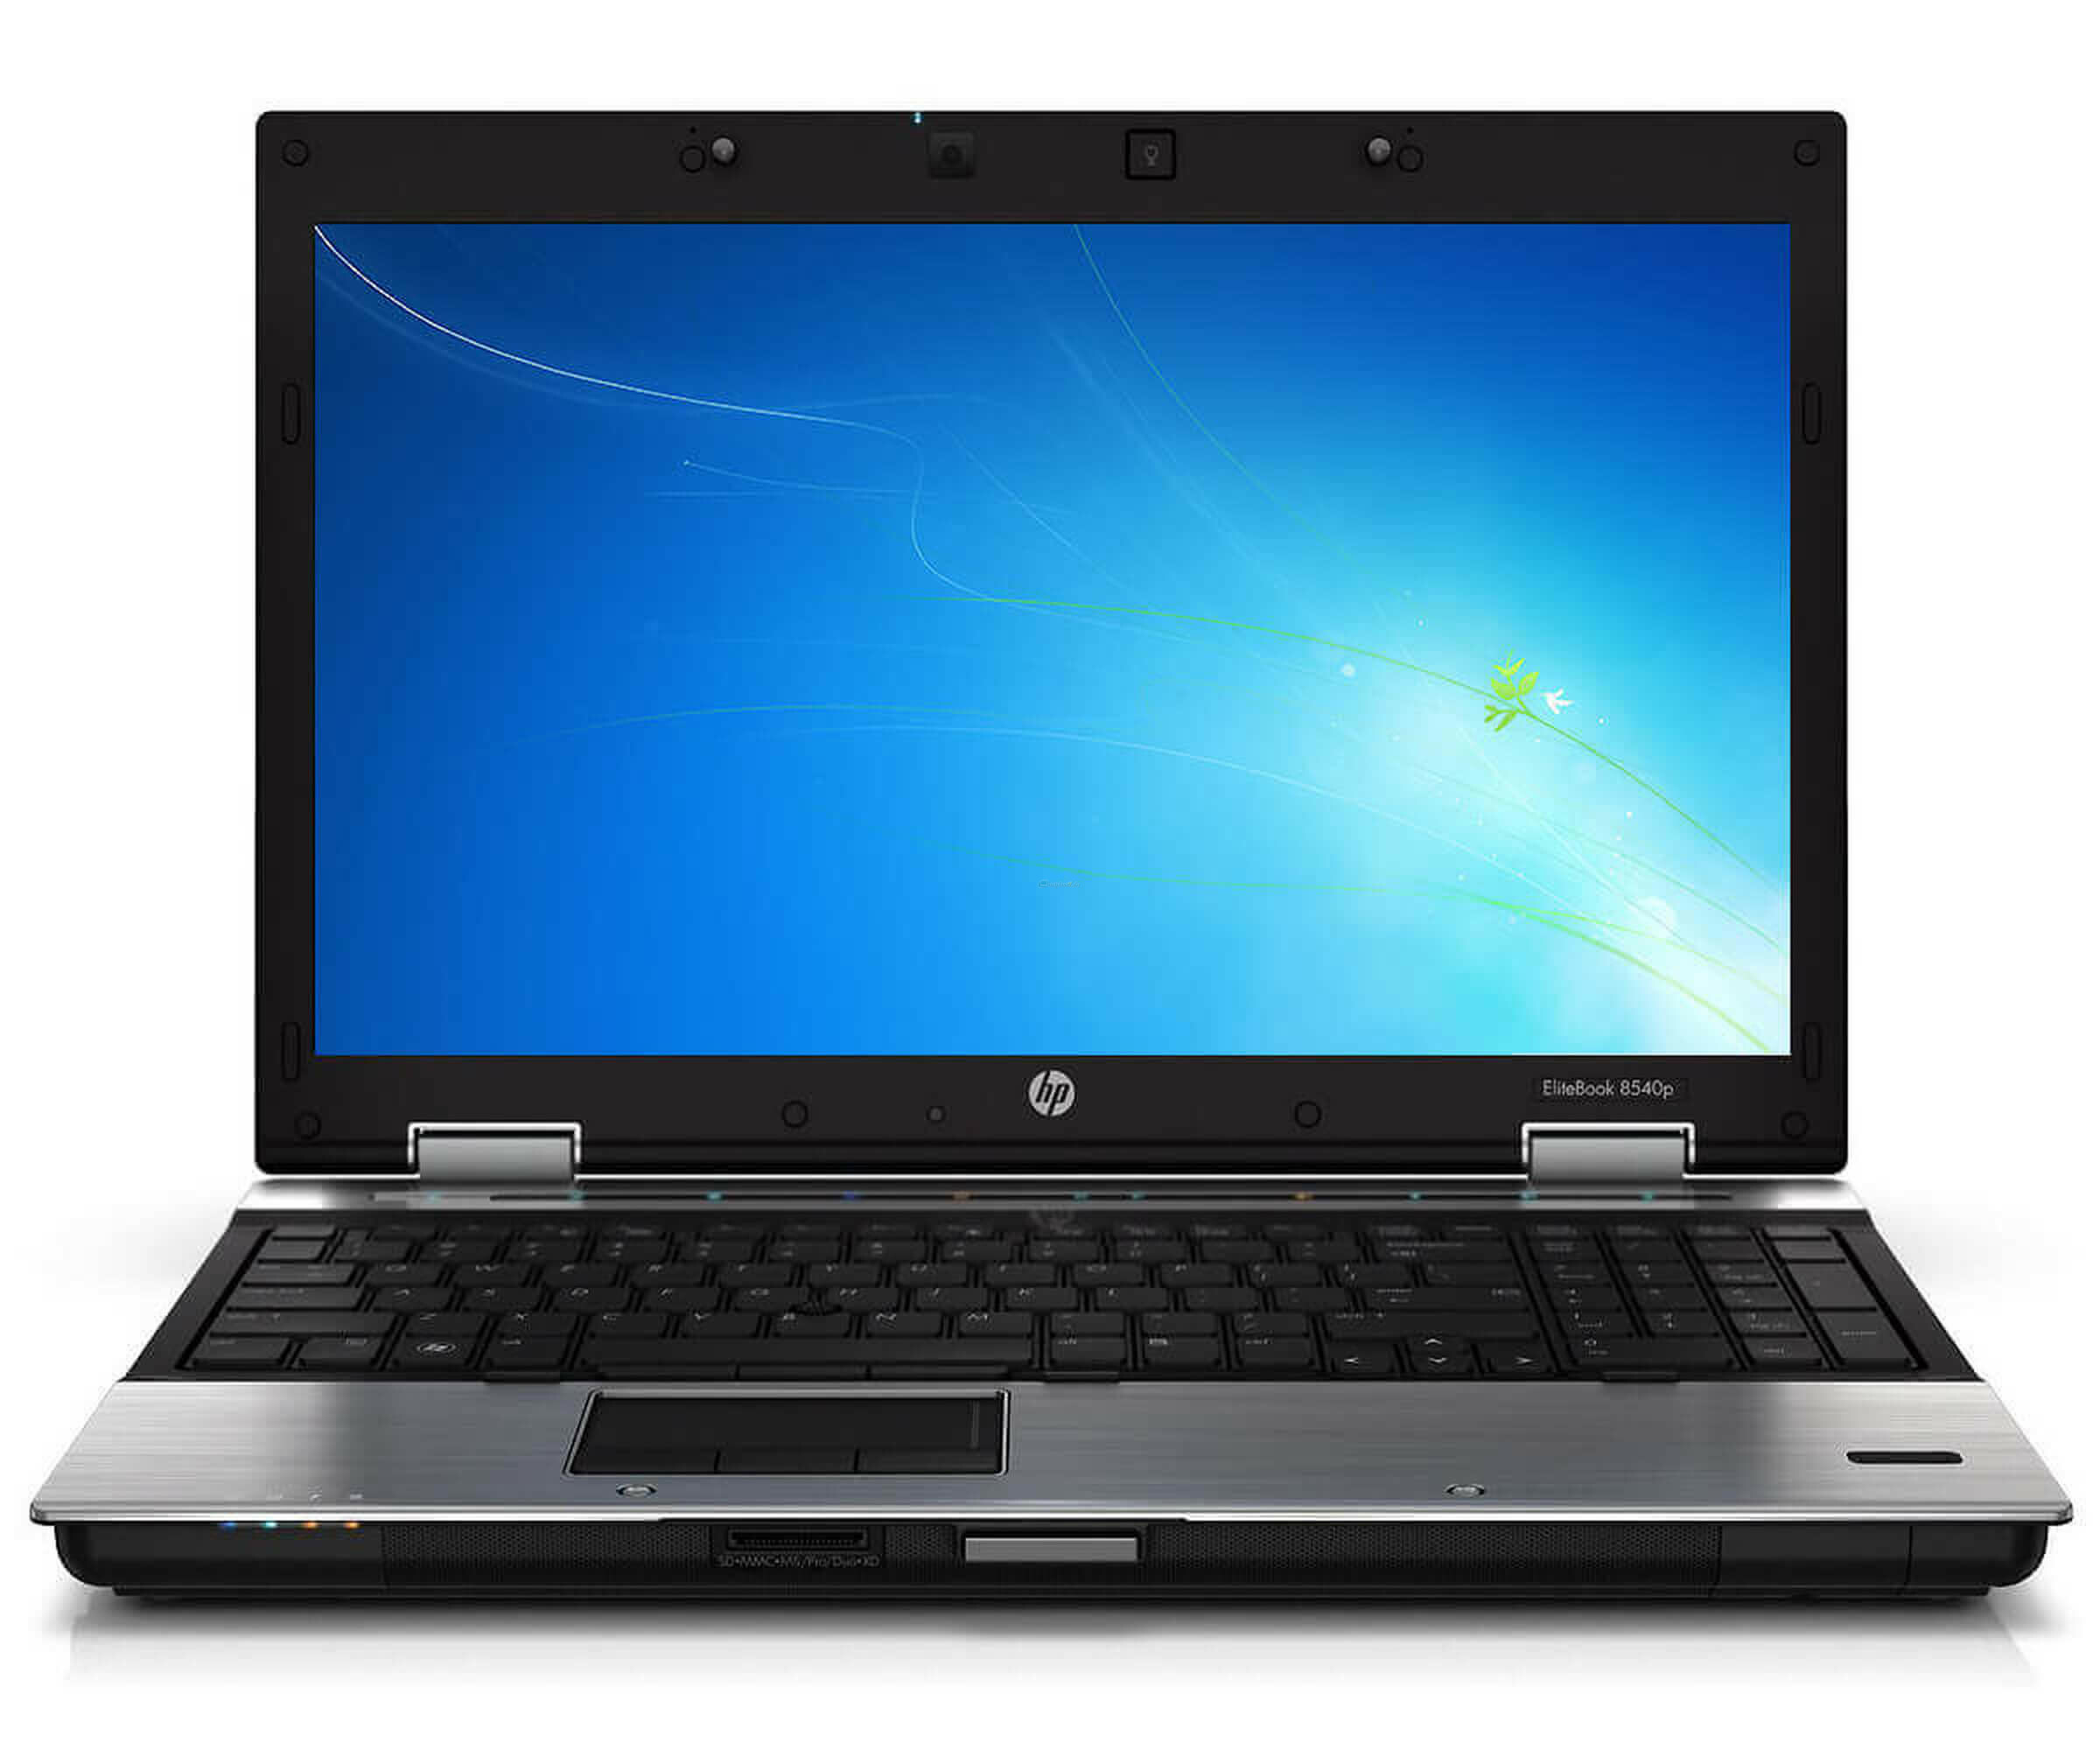 HP EliteBook 8540p - Core i5 540M / 2.53 GHz - 4 GB RAM - 250 GB HDD - 39.6 cm 15.6 - W7